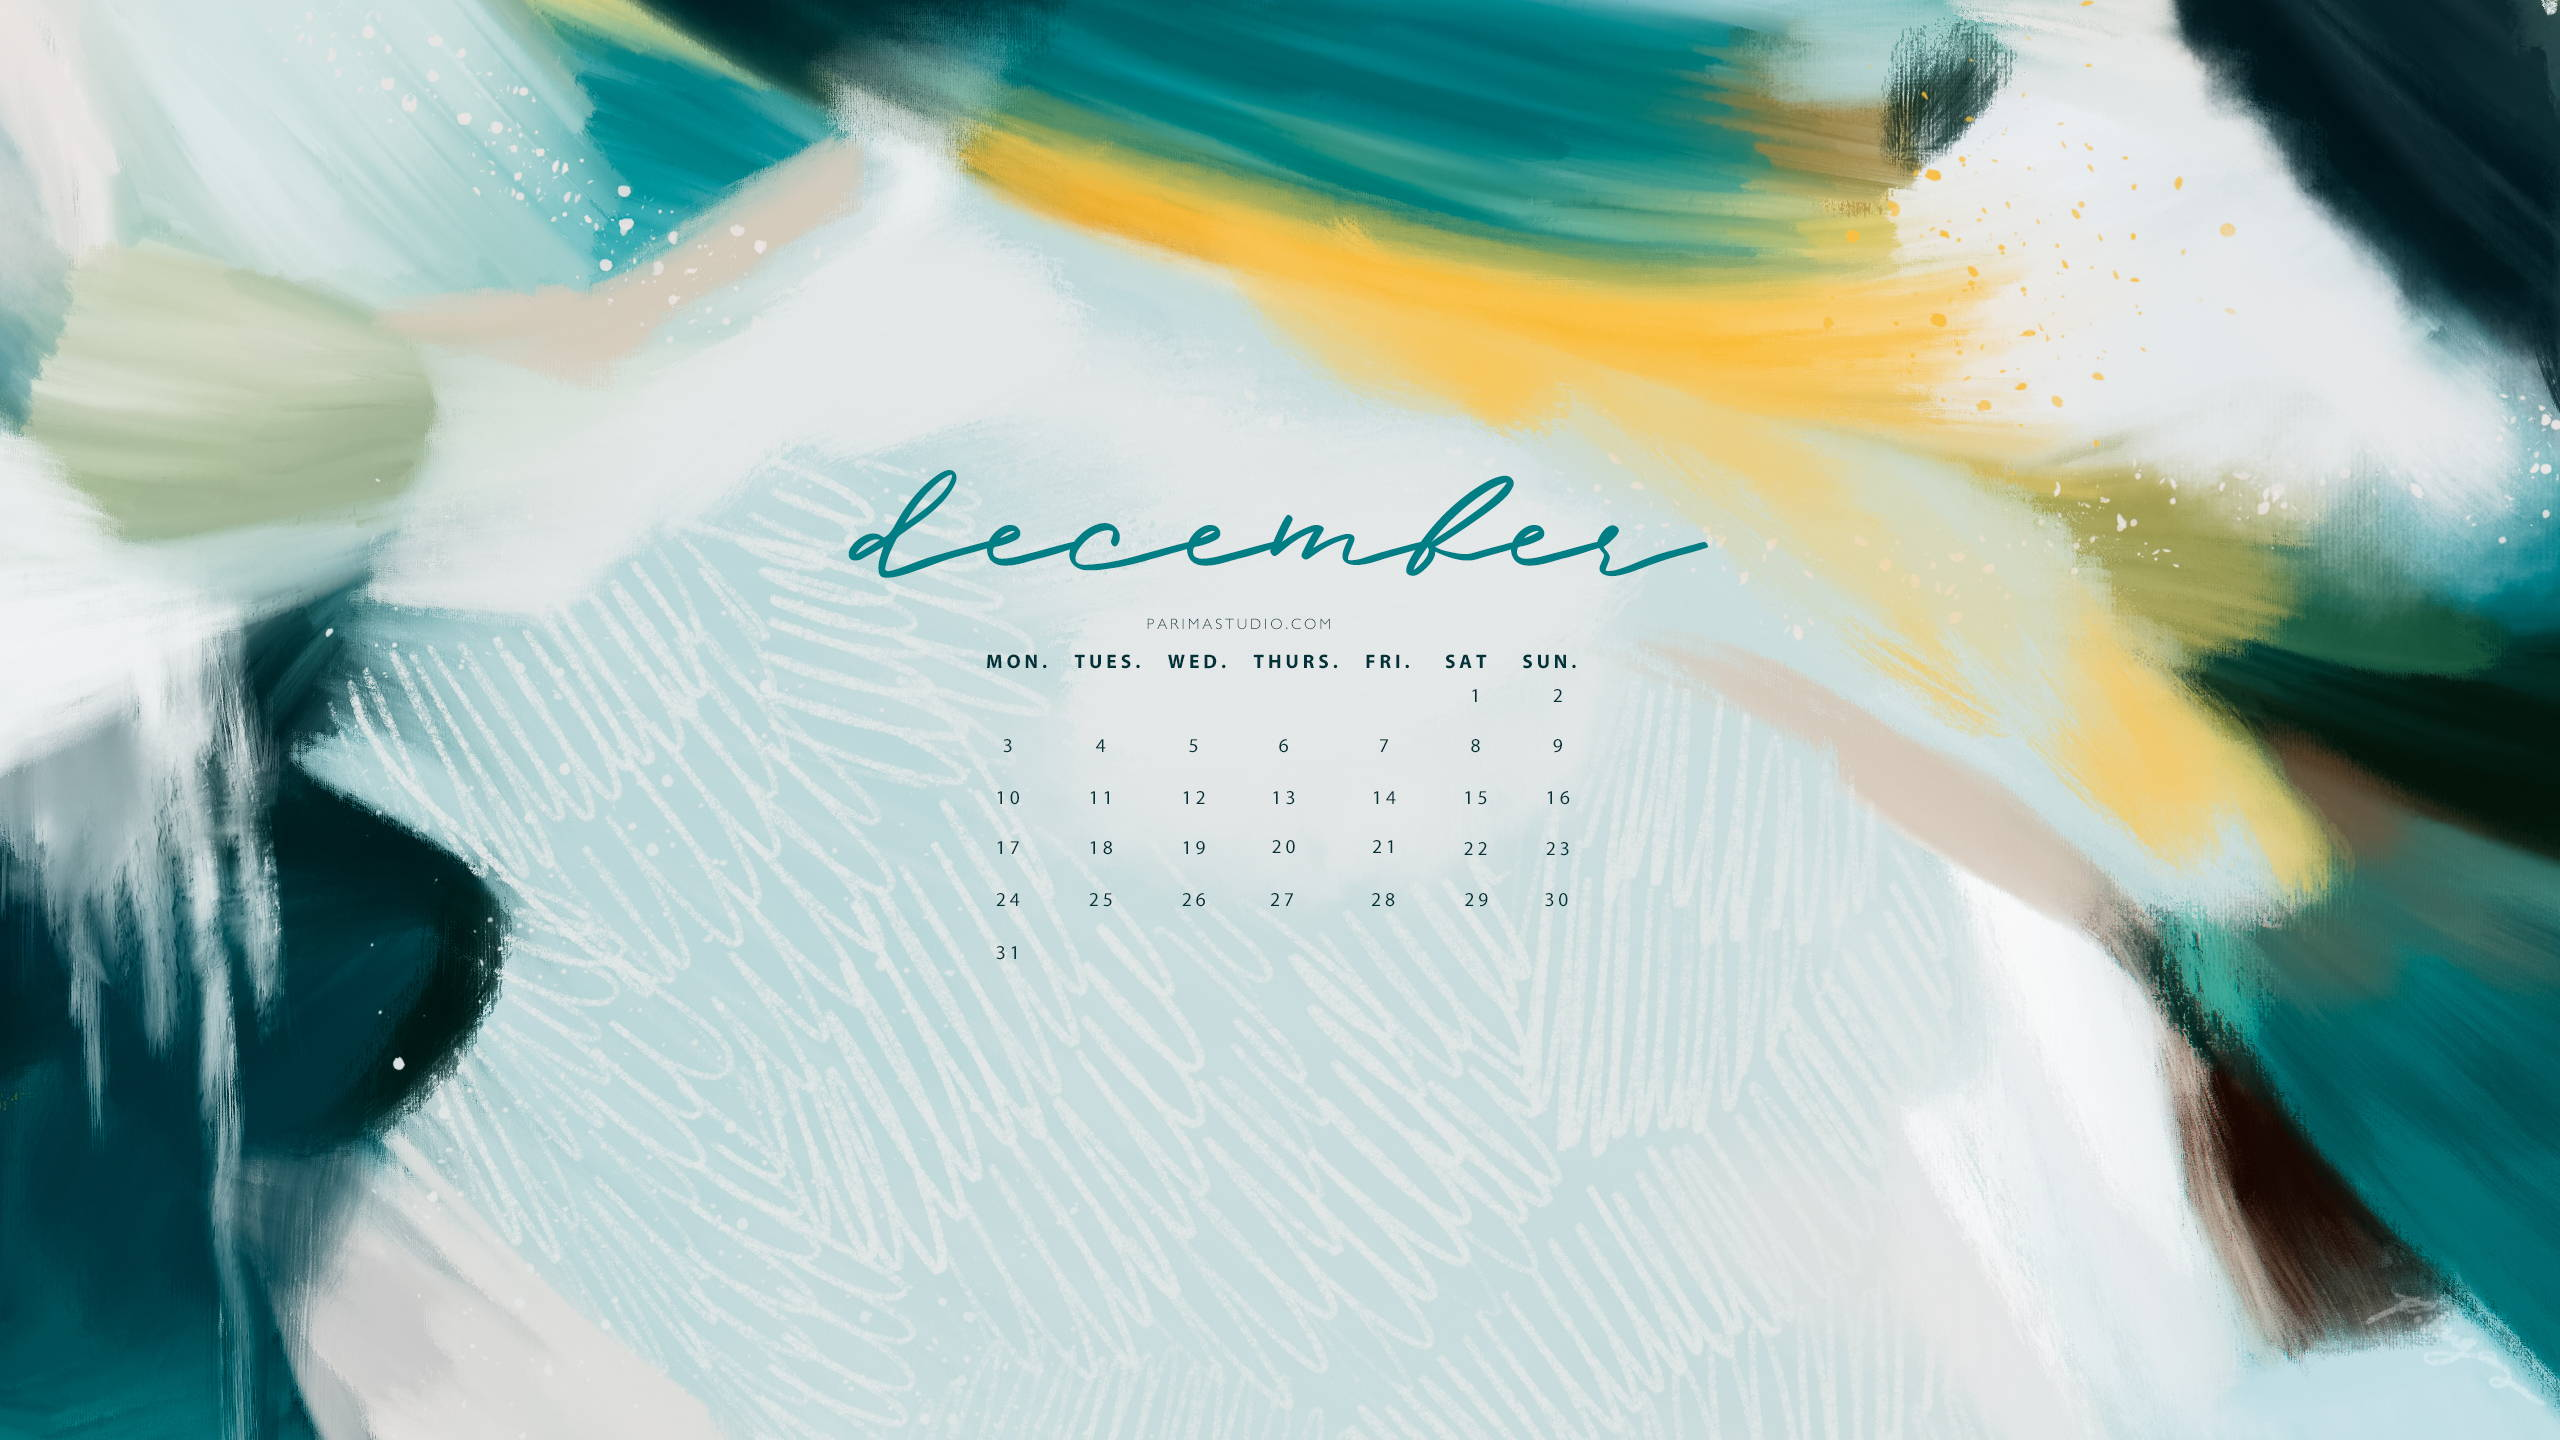 Free desktop calendar download by Parima Studio